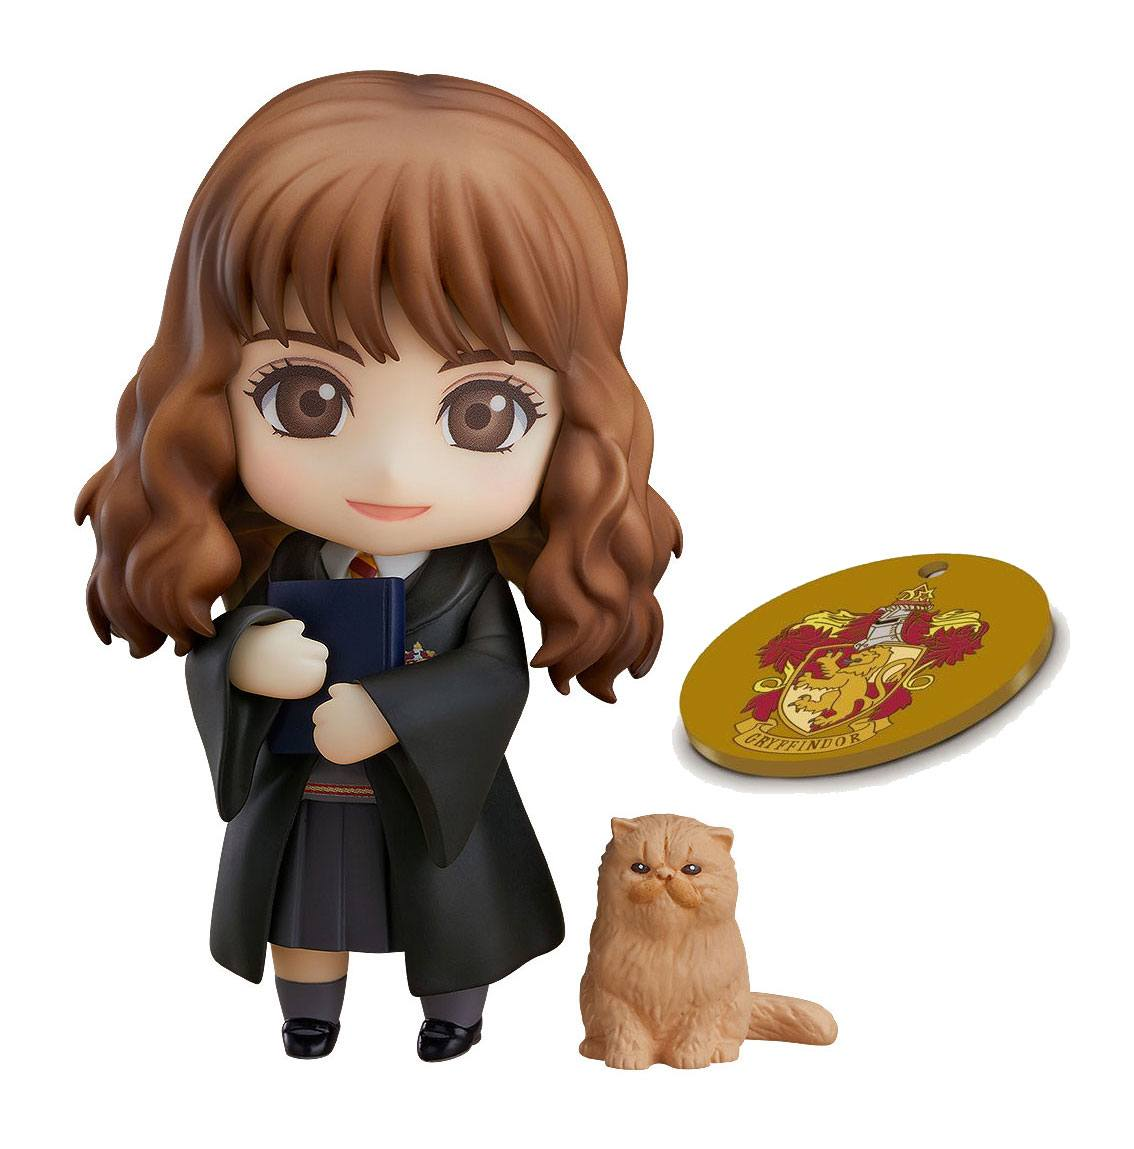 Harry Potter Nendoroid Action Figure Hermione Granger heo Exclusive 10 cm